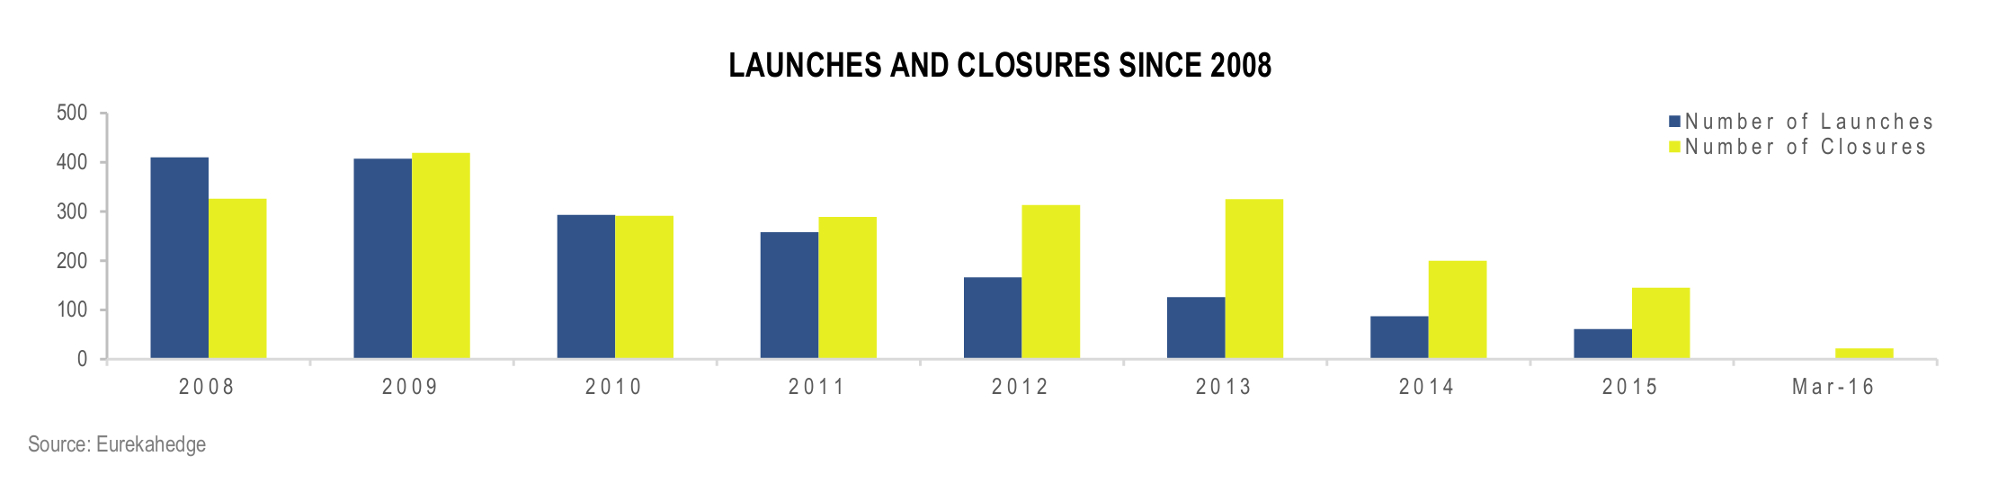 Funds of Hedge Funds Infographic May 2016 - Fund launches and closures since 2008